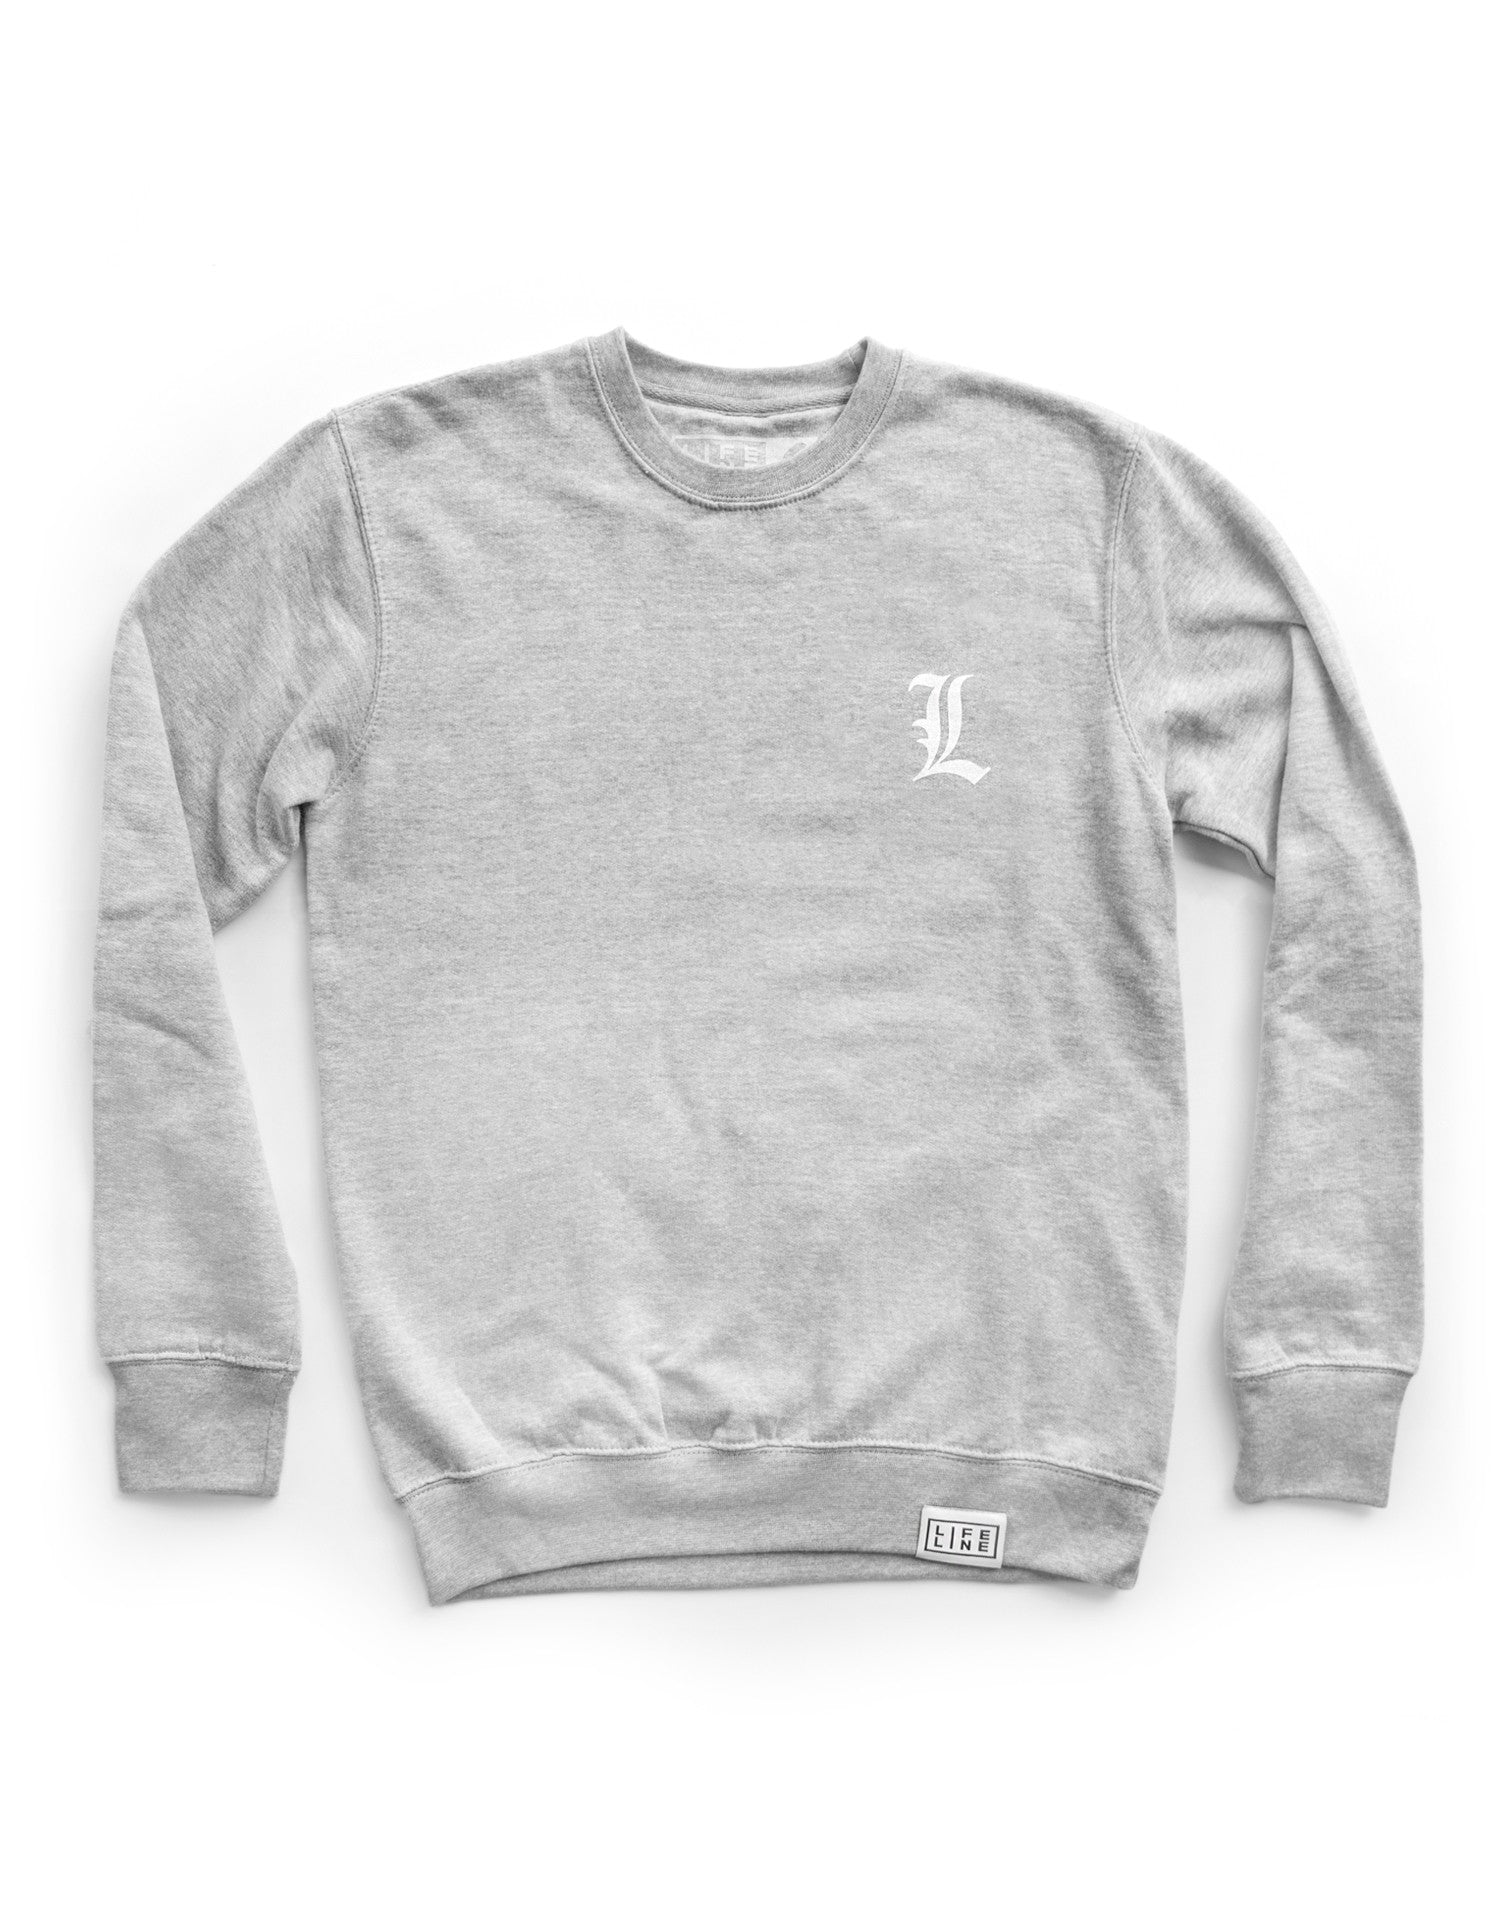 'Amesbury' Crewneck Sweater